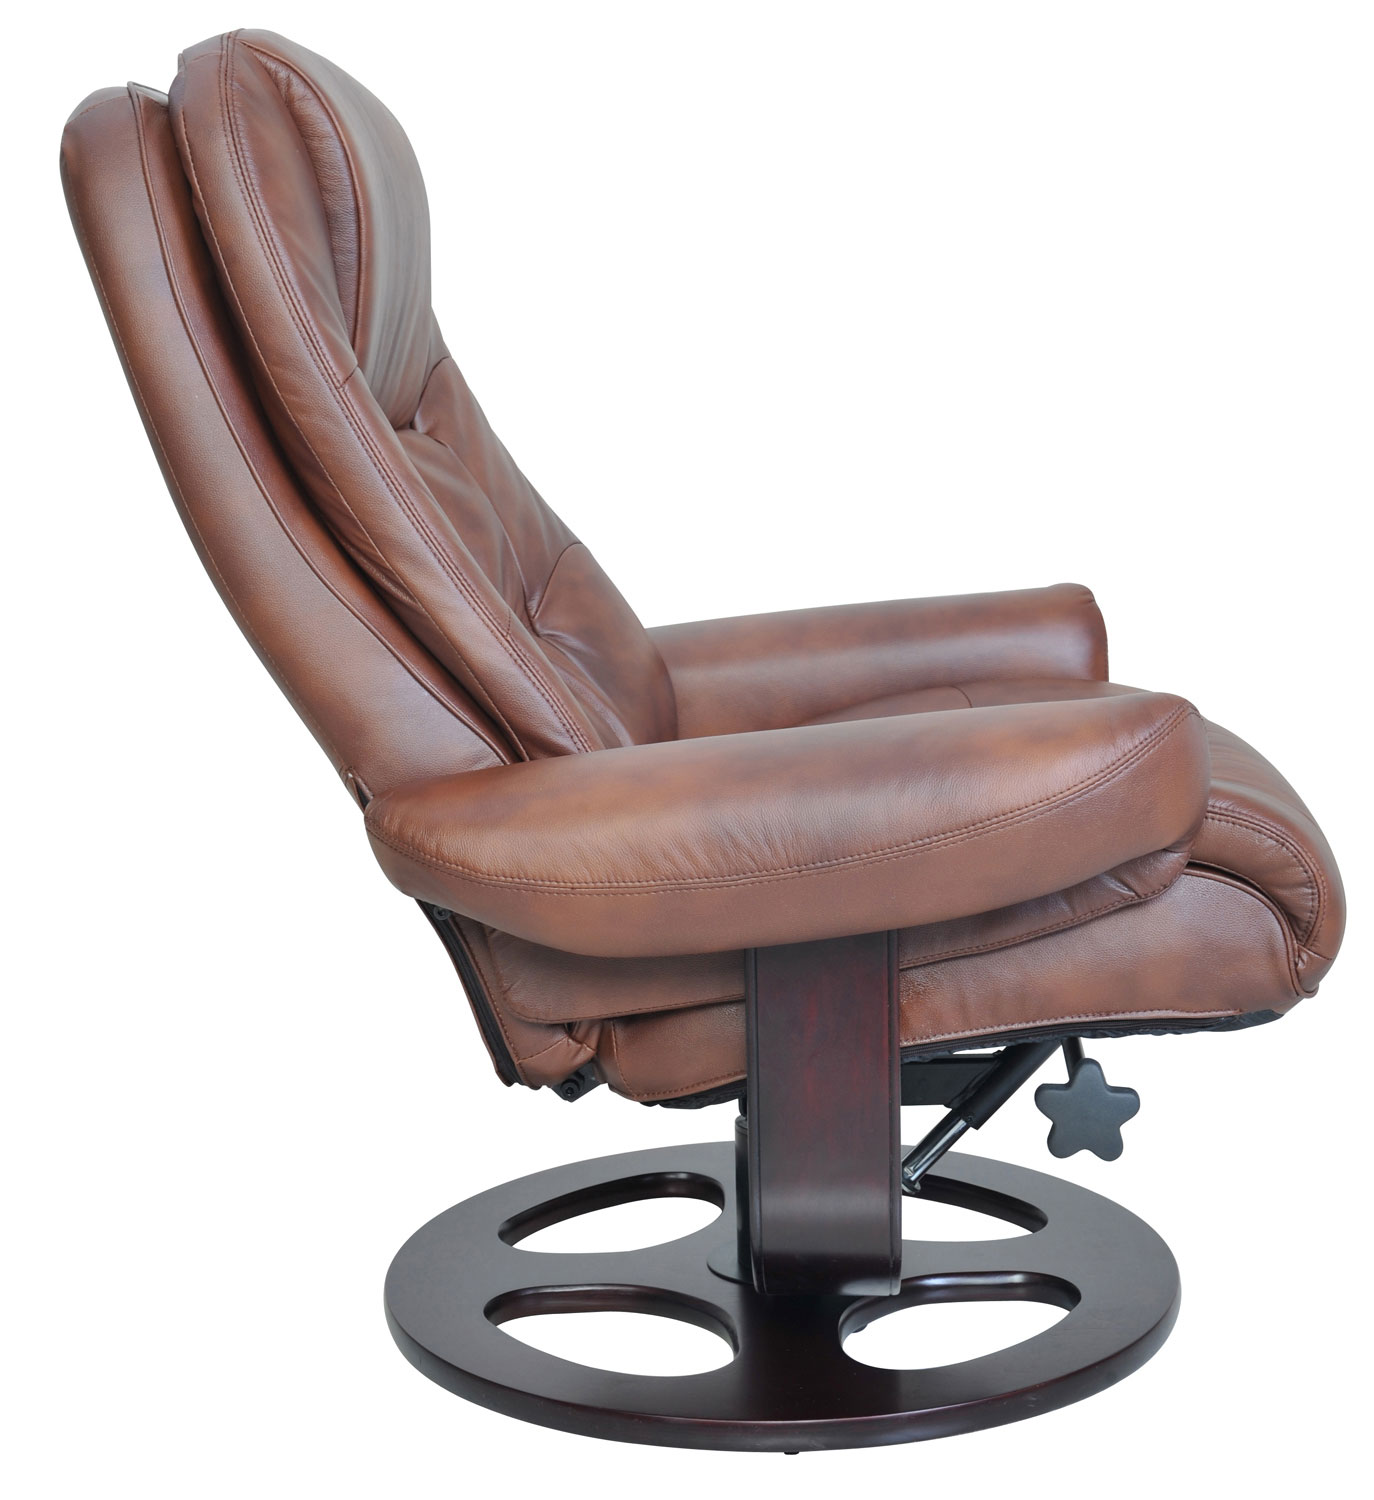 Barcalounger Jacque Pedestal Recliner Chair and Ottoman - Hilton Whiskey/Leather Match